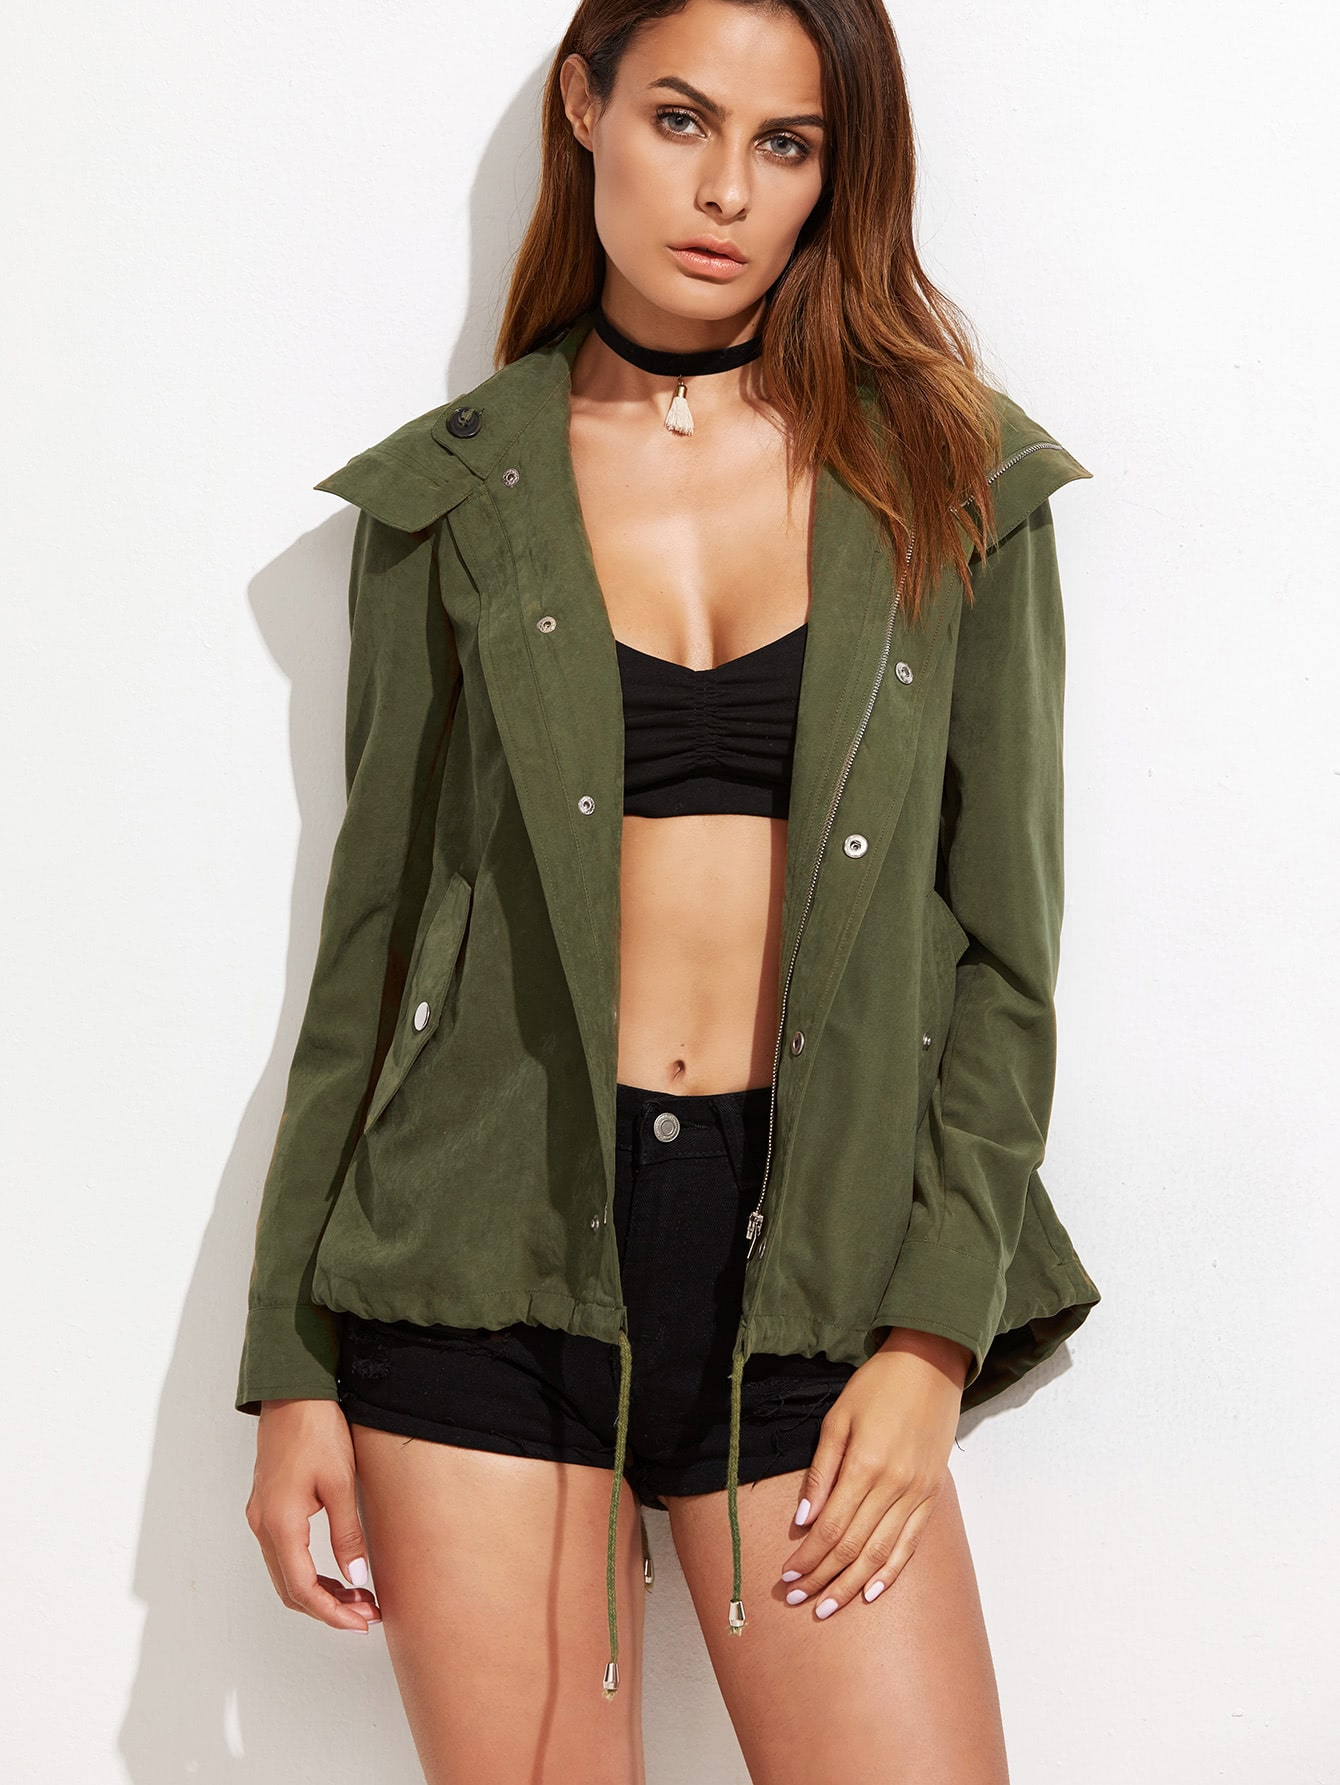 Olive Green Hidden Zip Hooded Drawstring JacketOlive Green Hidden Zip Hooded Drawstring Jacket<br><br>color: Green<br>size: L,XS